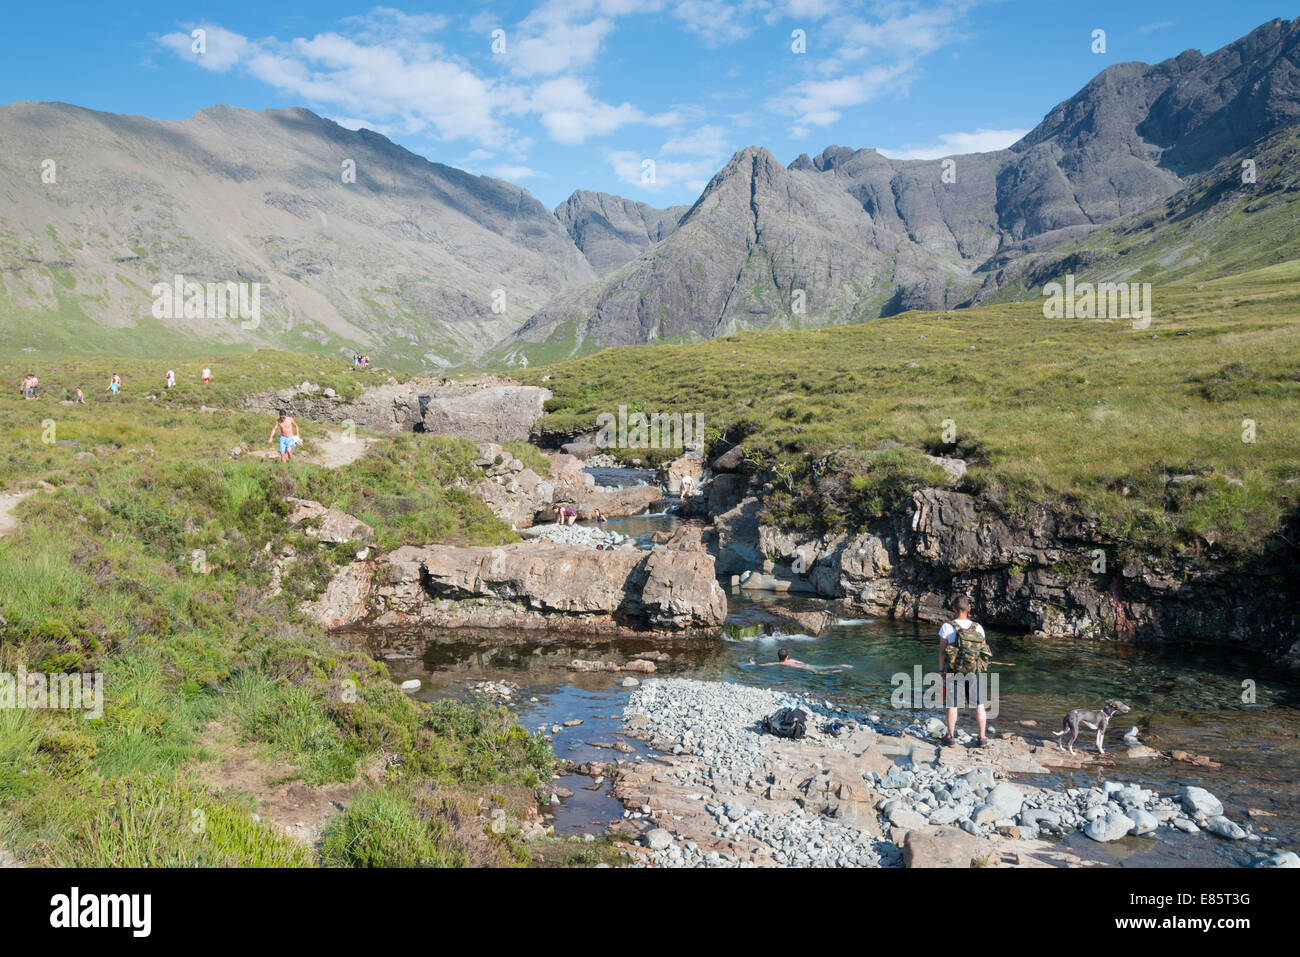 People enjoying the Fairy pools in the Cuillin mountains on the Isle of Skye  Scotland in summer - Stock Image